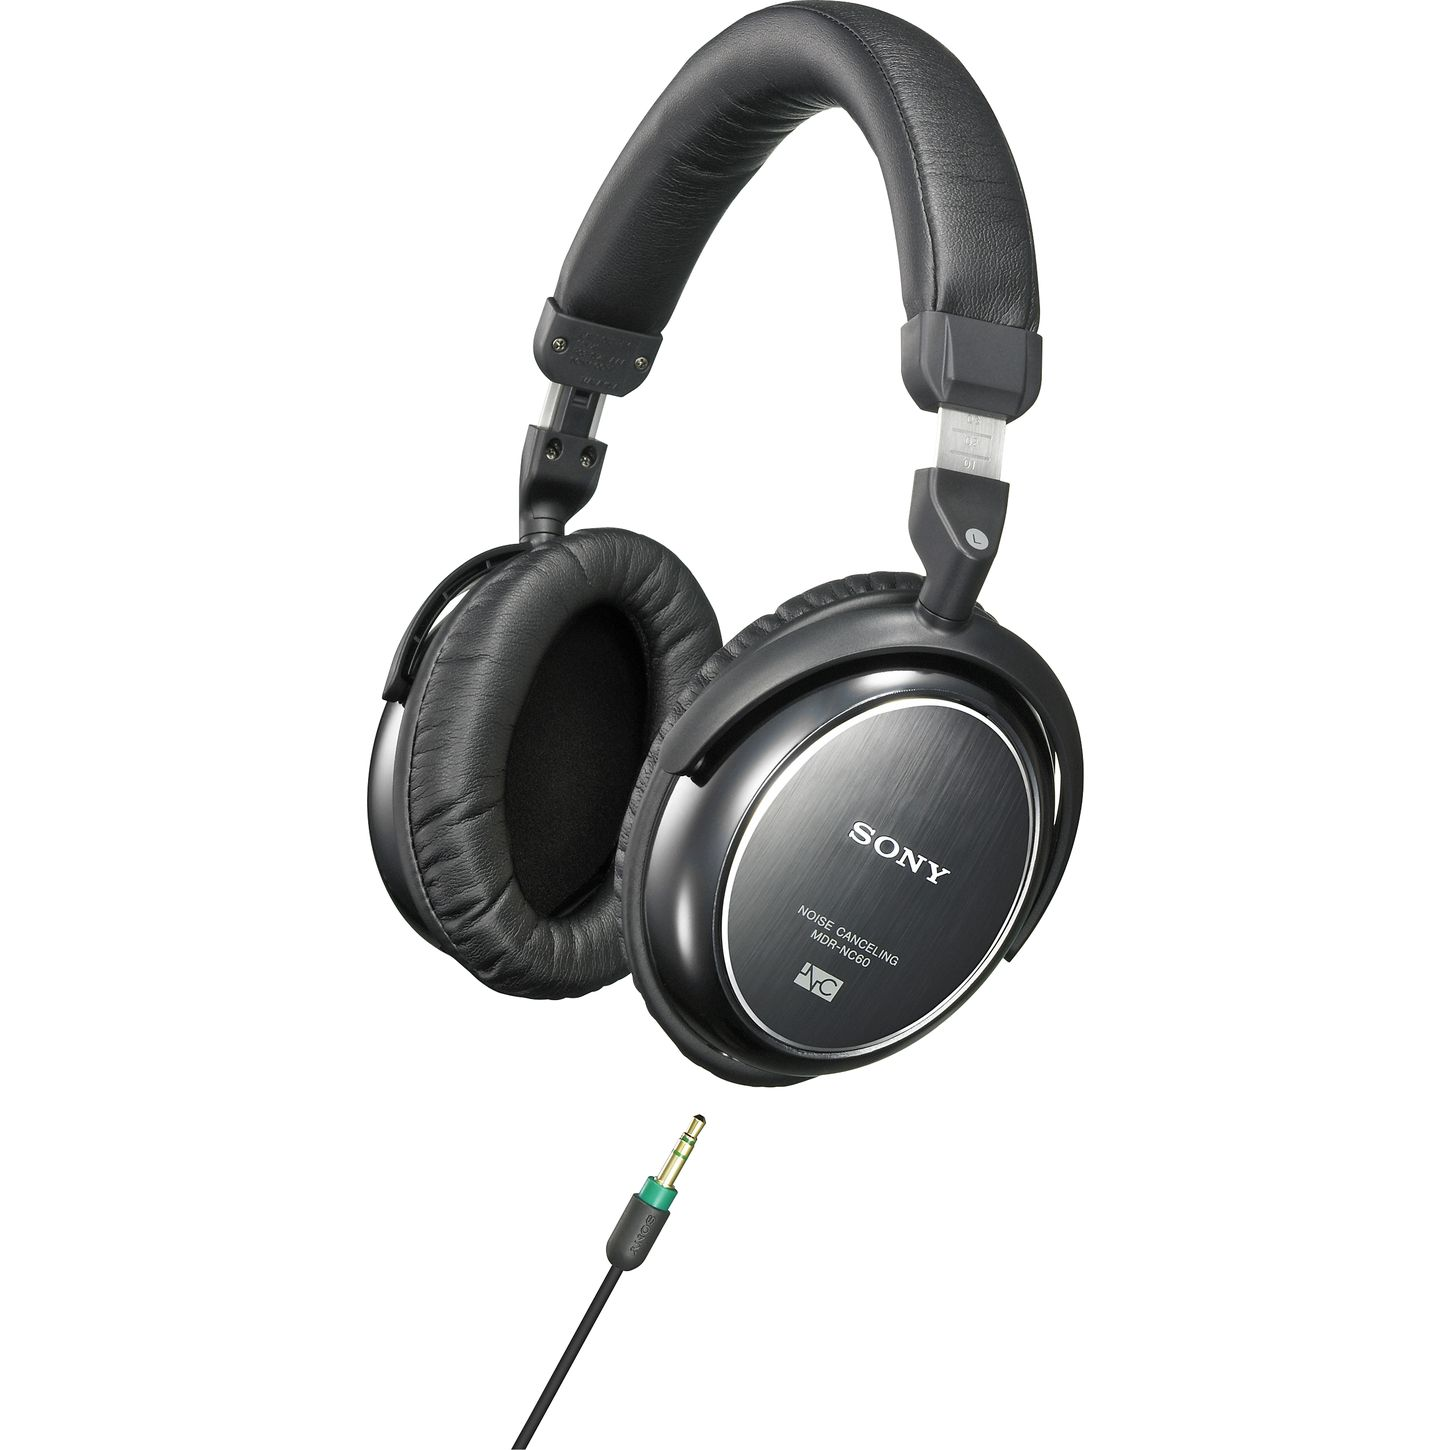 Earbuds noise canceling - sony headphones noise cancelling earbuds